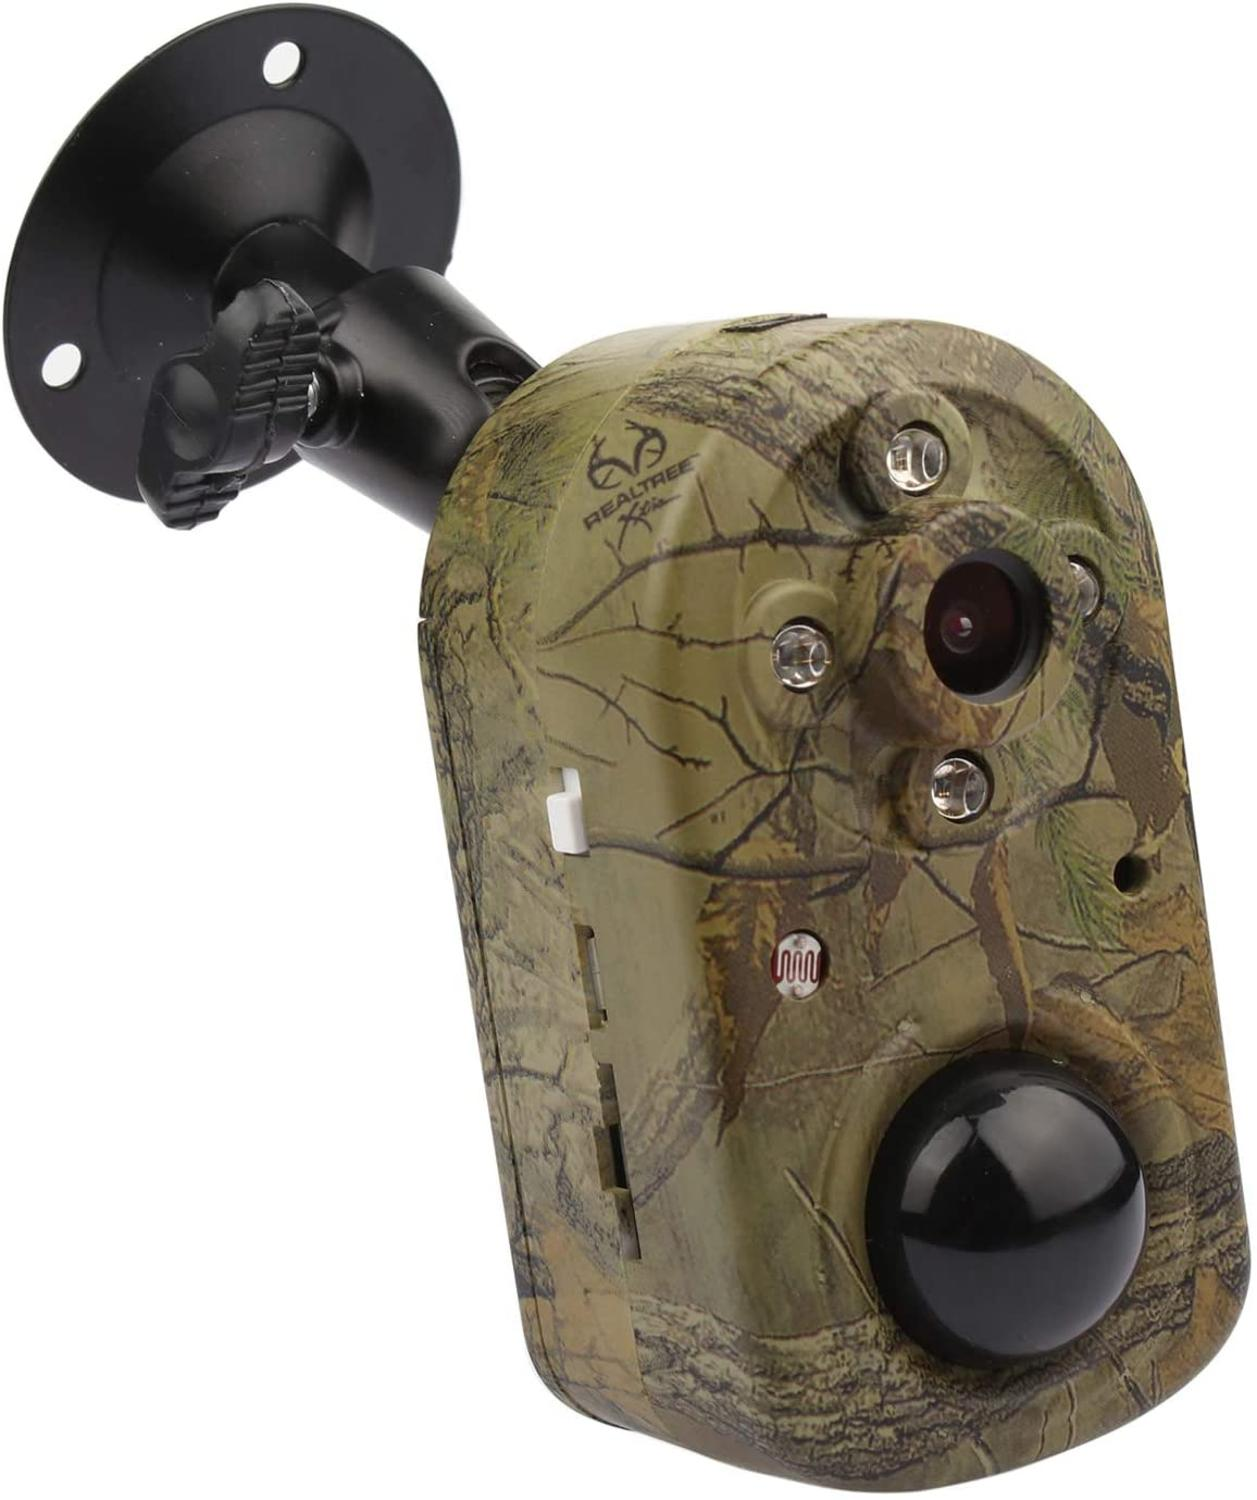 Security Camera,Camouflage 1080P HD PIR Motion Detection Home Security Camera System,Battery Powered Night Vision Standalone Cam